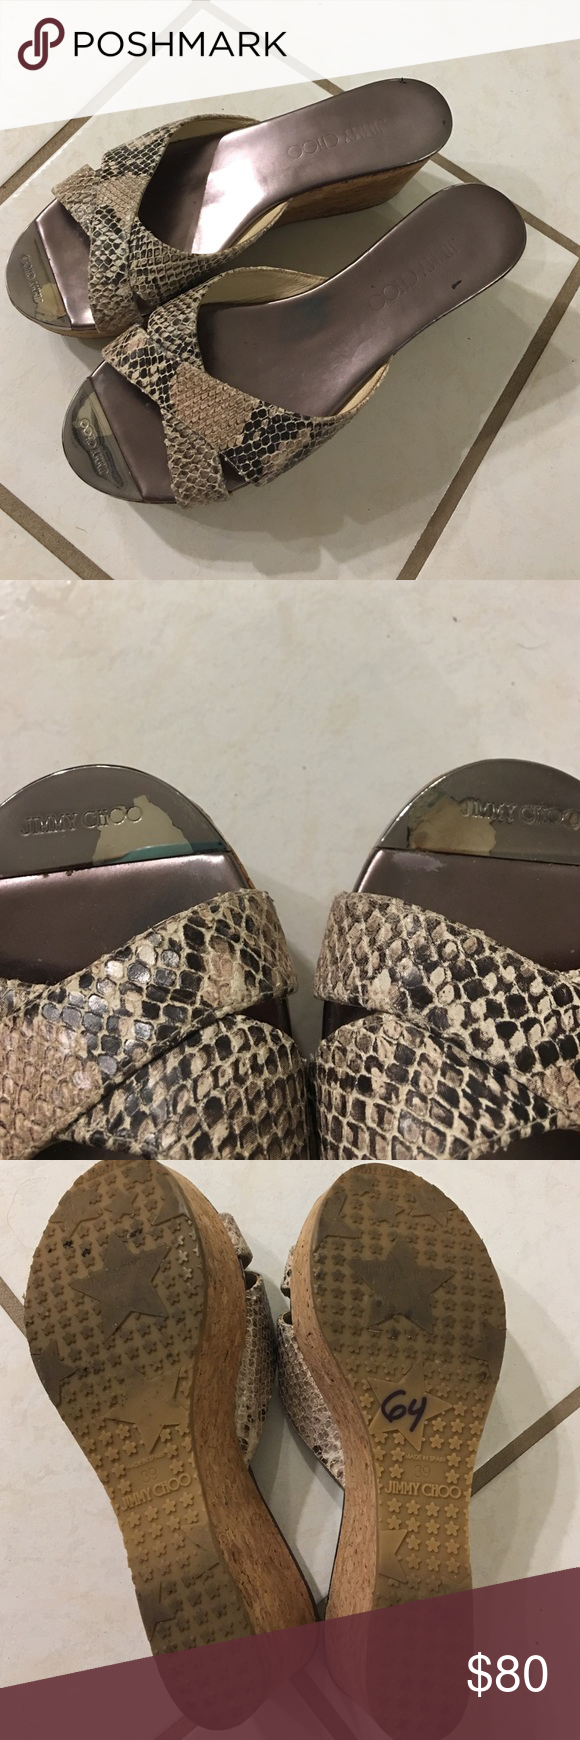 🐍Jimmy Choo snakeskin wedges.🐍 Good condition, some wear at big toe but not noticeable when wearing. So stylish. These will be your go-to to add some fun and flair to your summer wardrobe. 🐍 Jimmy Choo Shoes Wedges